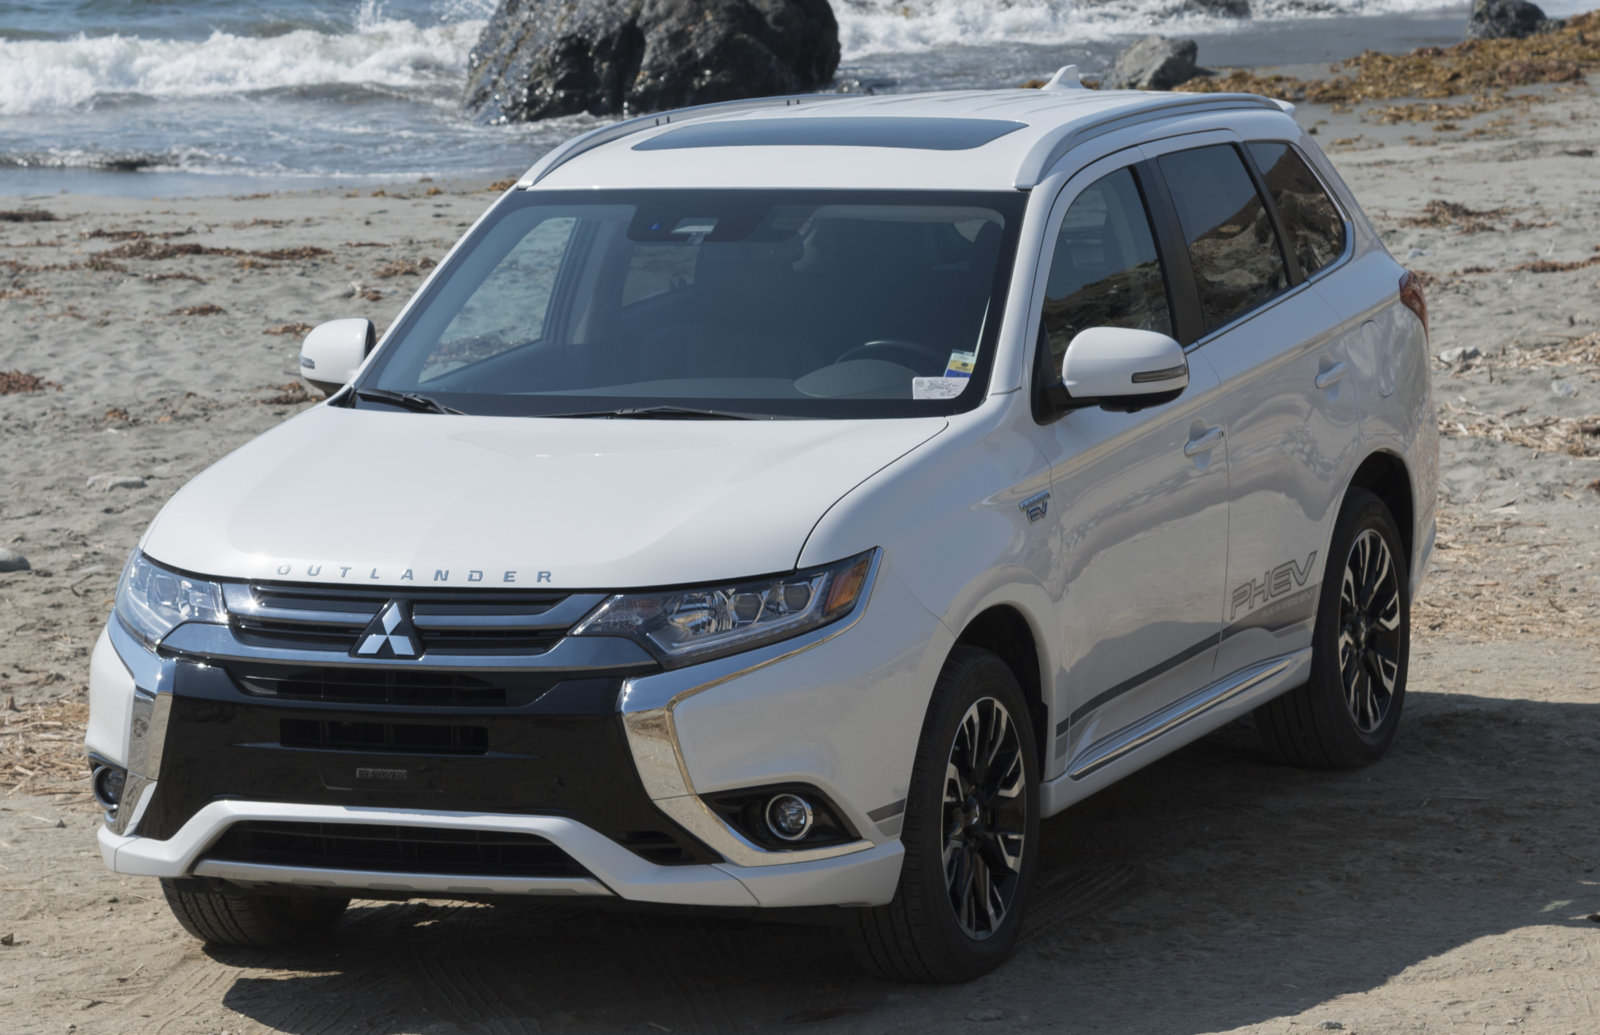 2018 Mitsubishi Outlander Phev See User Reviews 1 Photos And Great Deals For 2018 Mitsubishi Outland Mitsubishi Outlander Outlander Phev Car Insurance Online